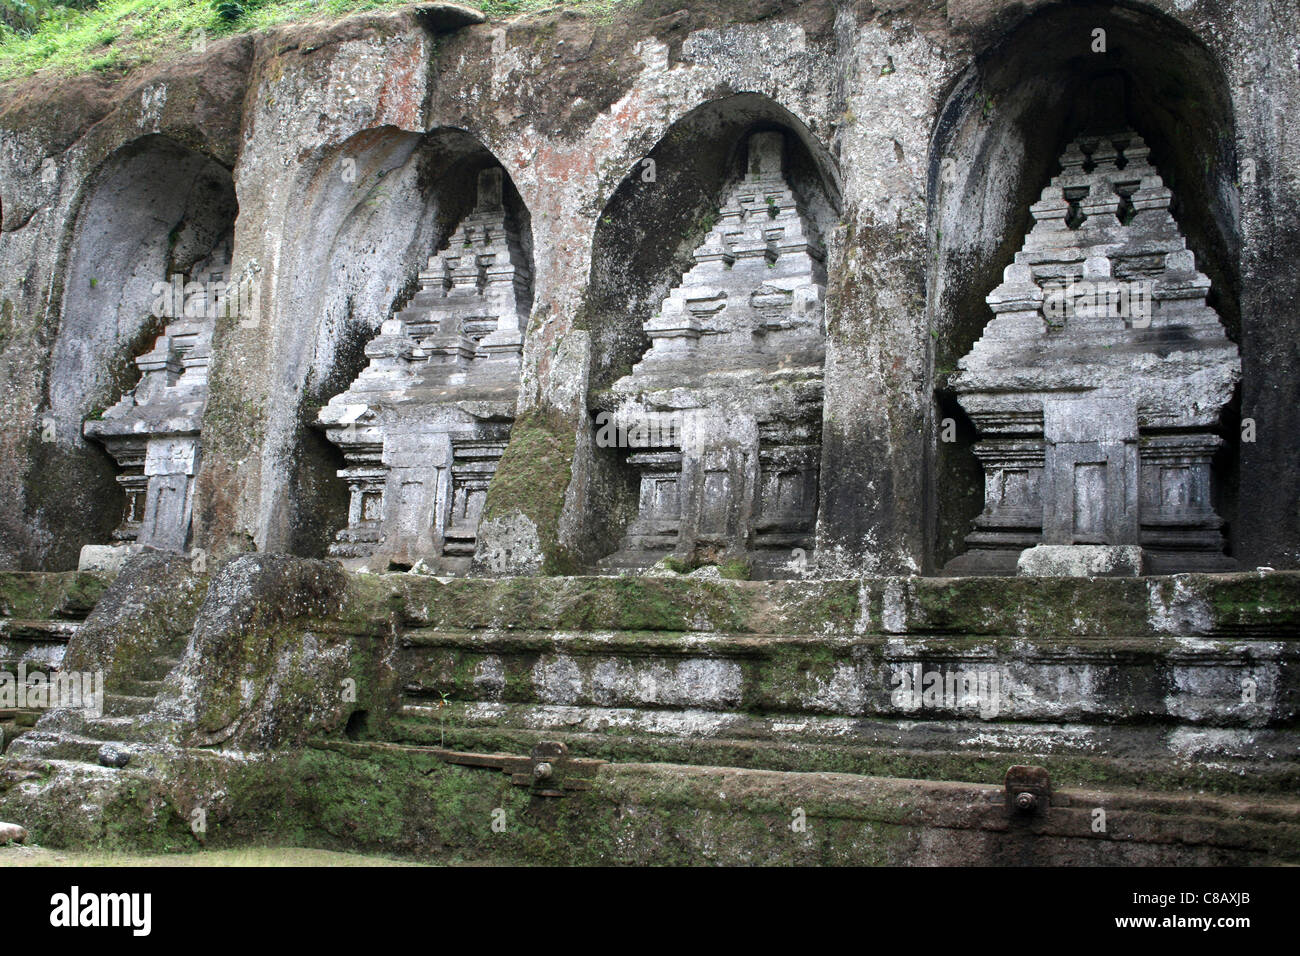 Rock-cut Candi (Shrines) At Gunung Kawi, Bali Stock Photo